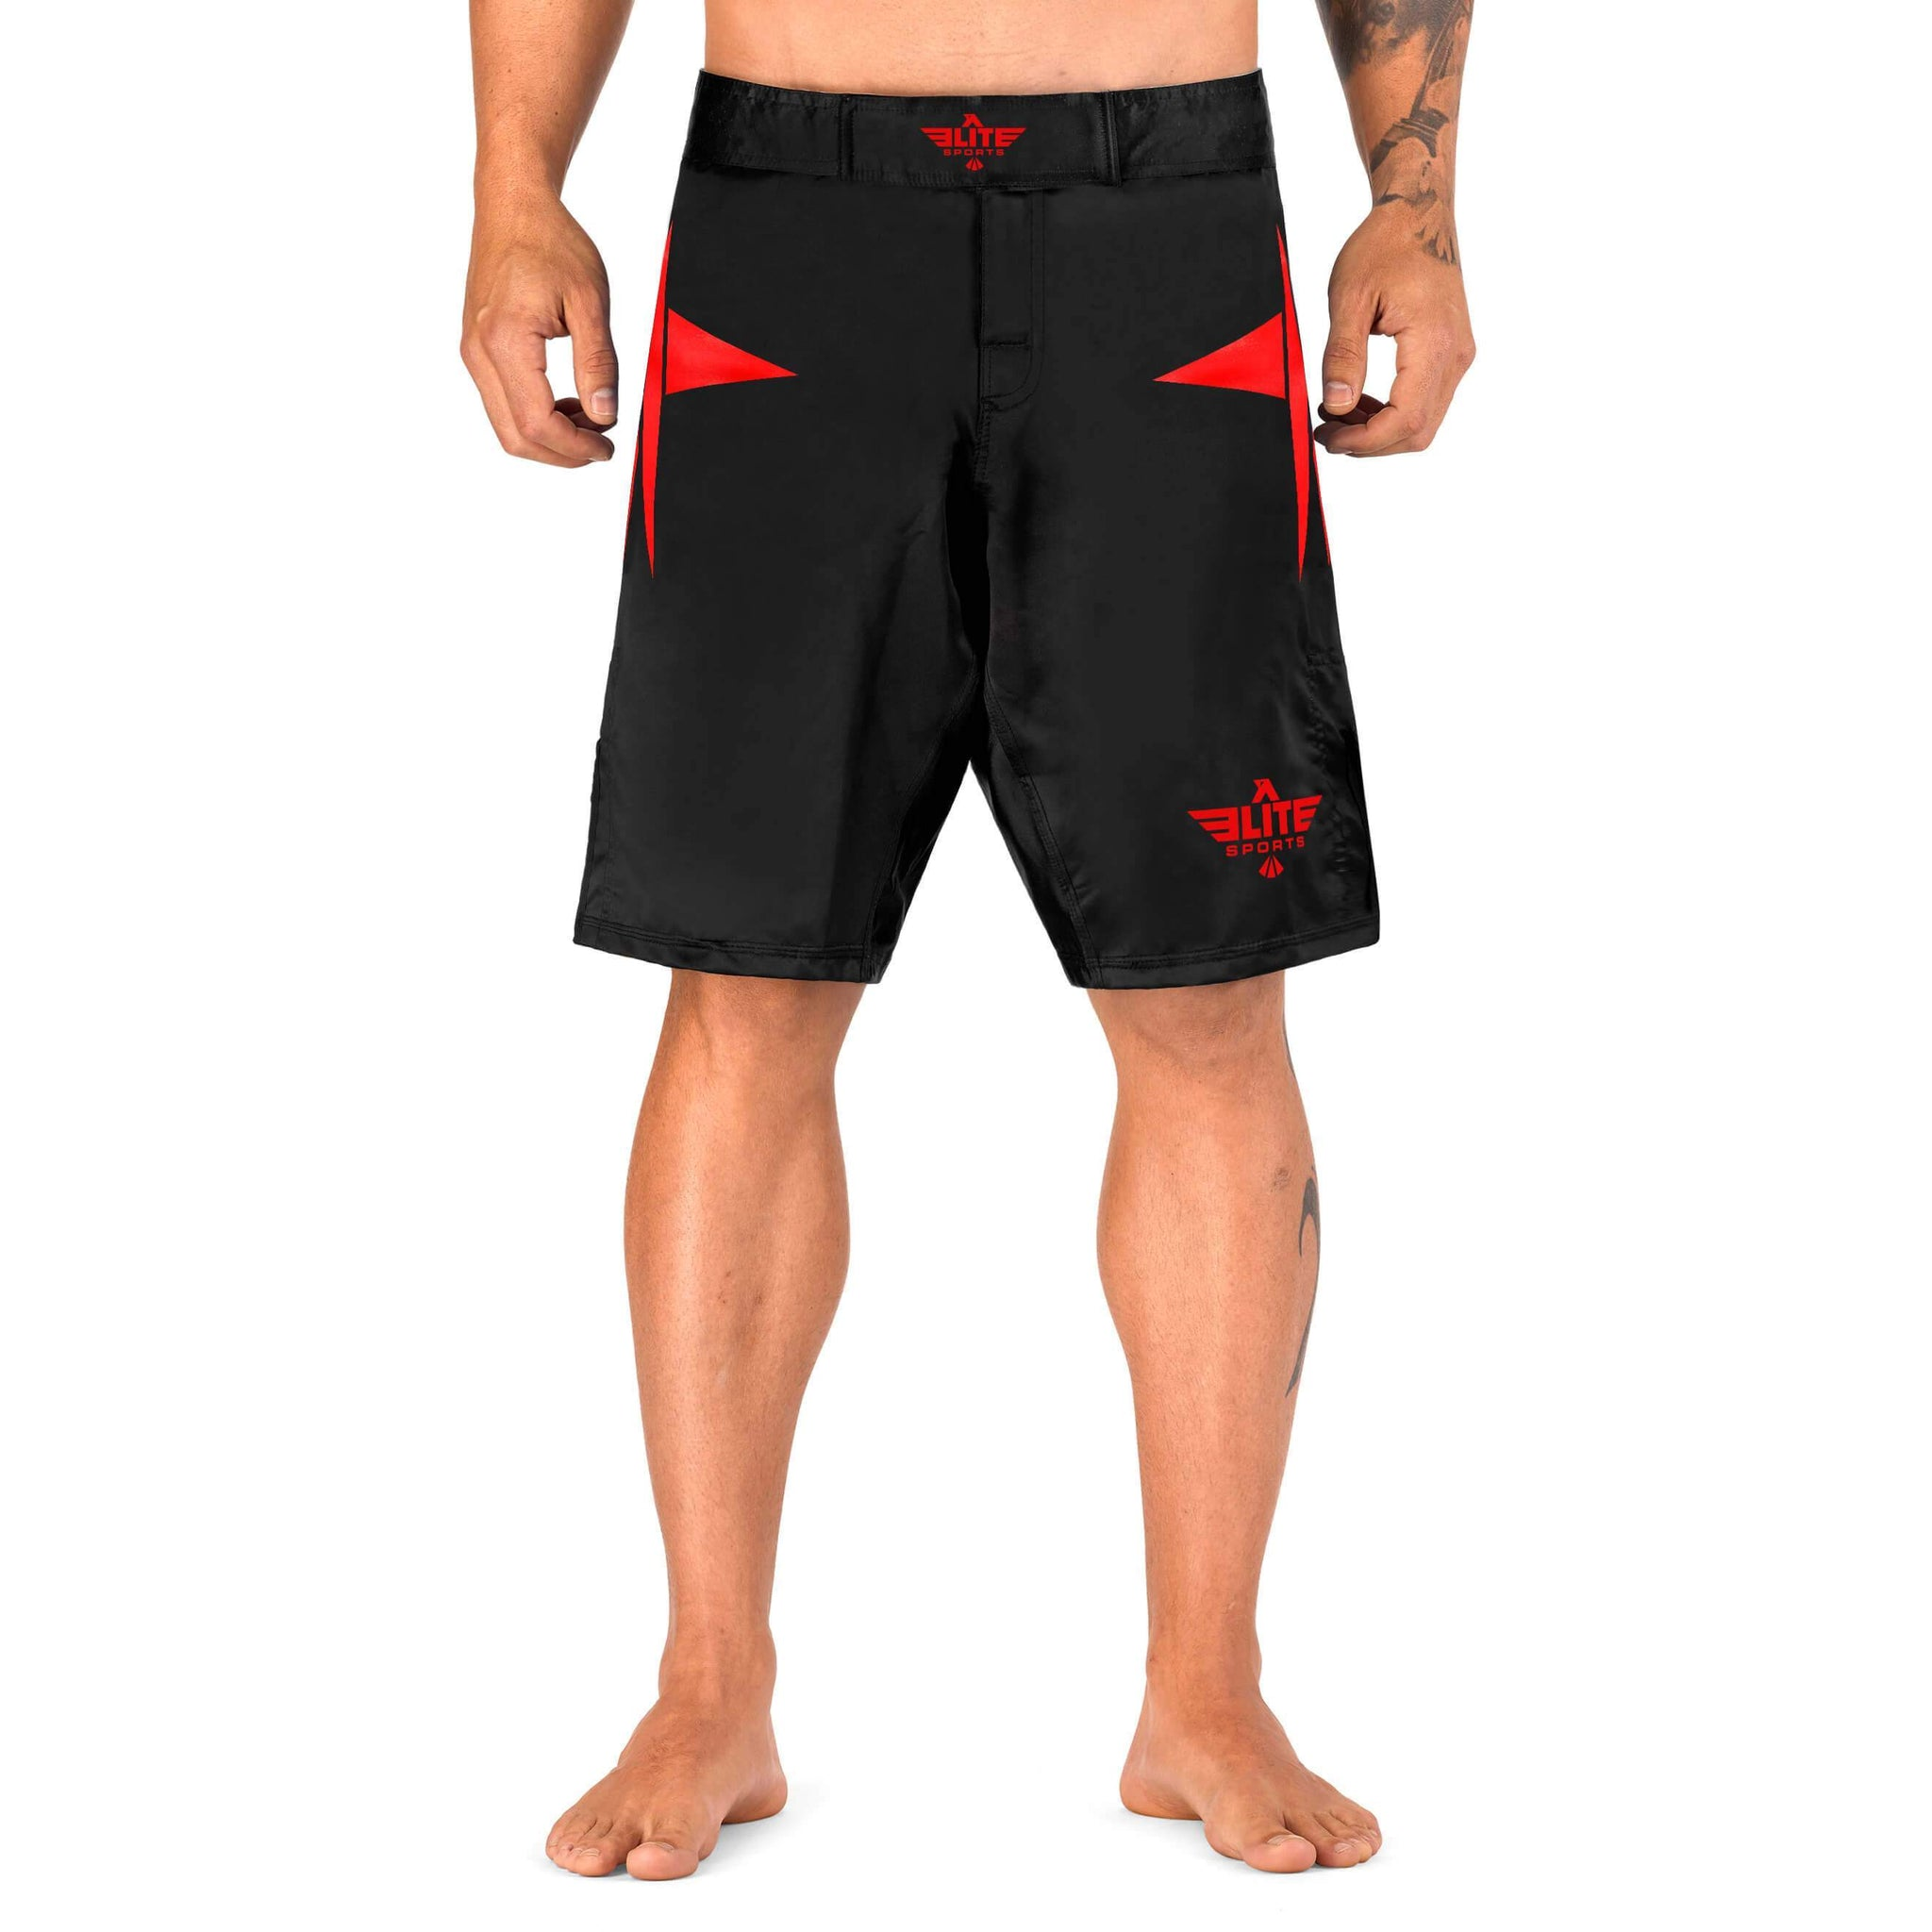 Load image into Gallery viewer, Elite Sports Star Series Sublimation Black/Red Wrestling Shorts